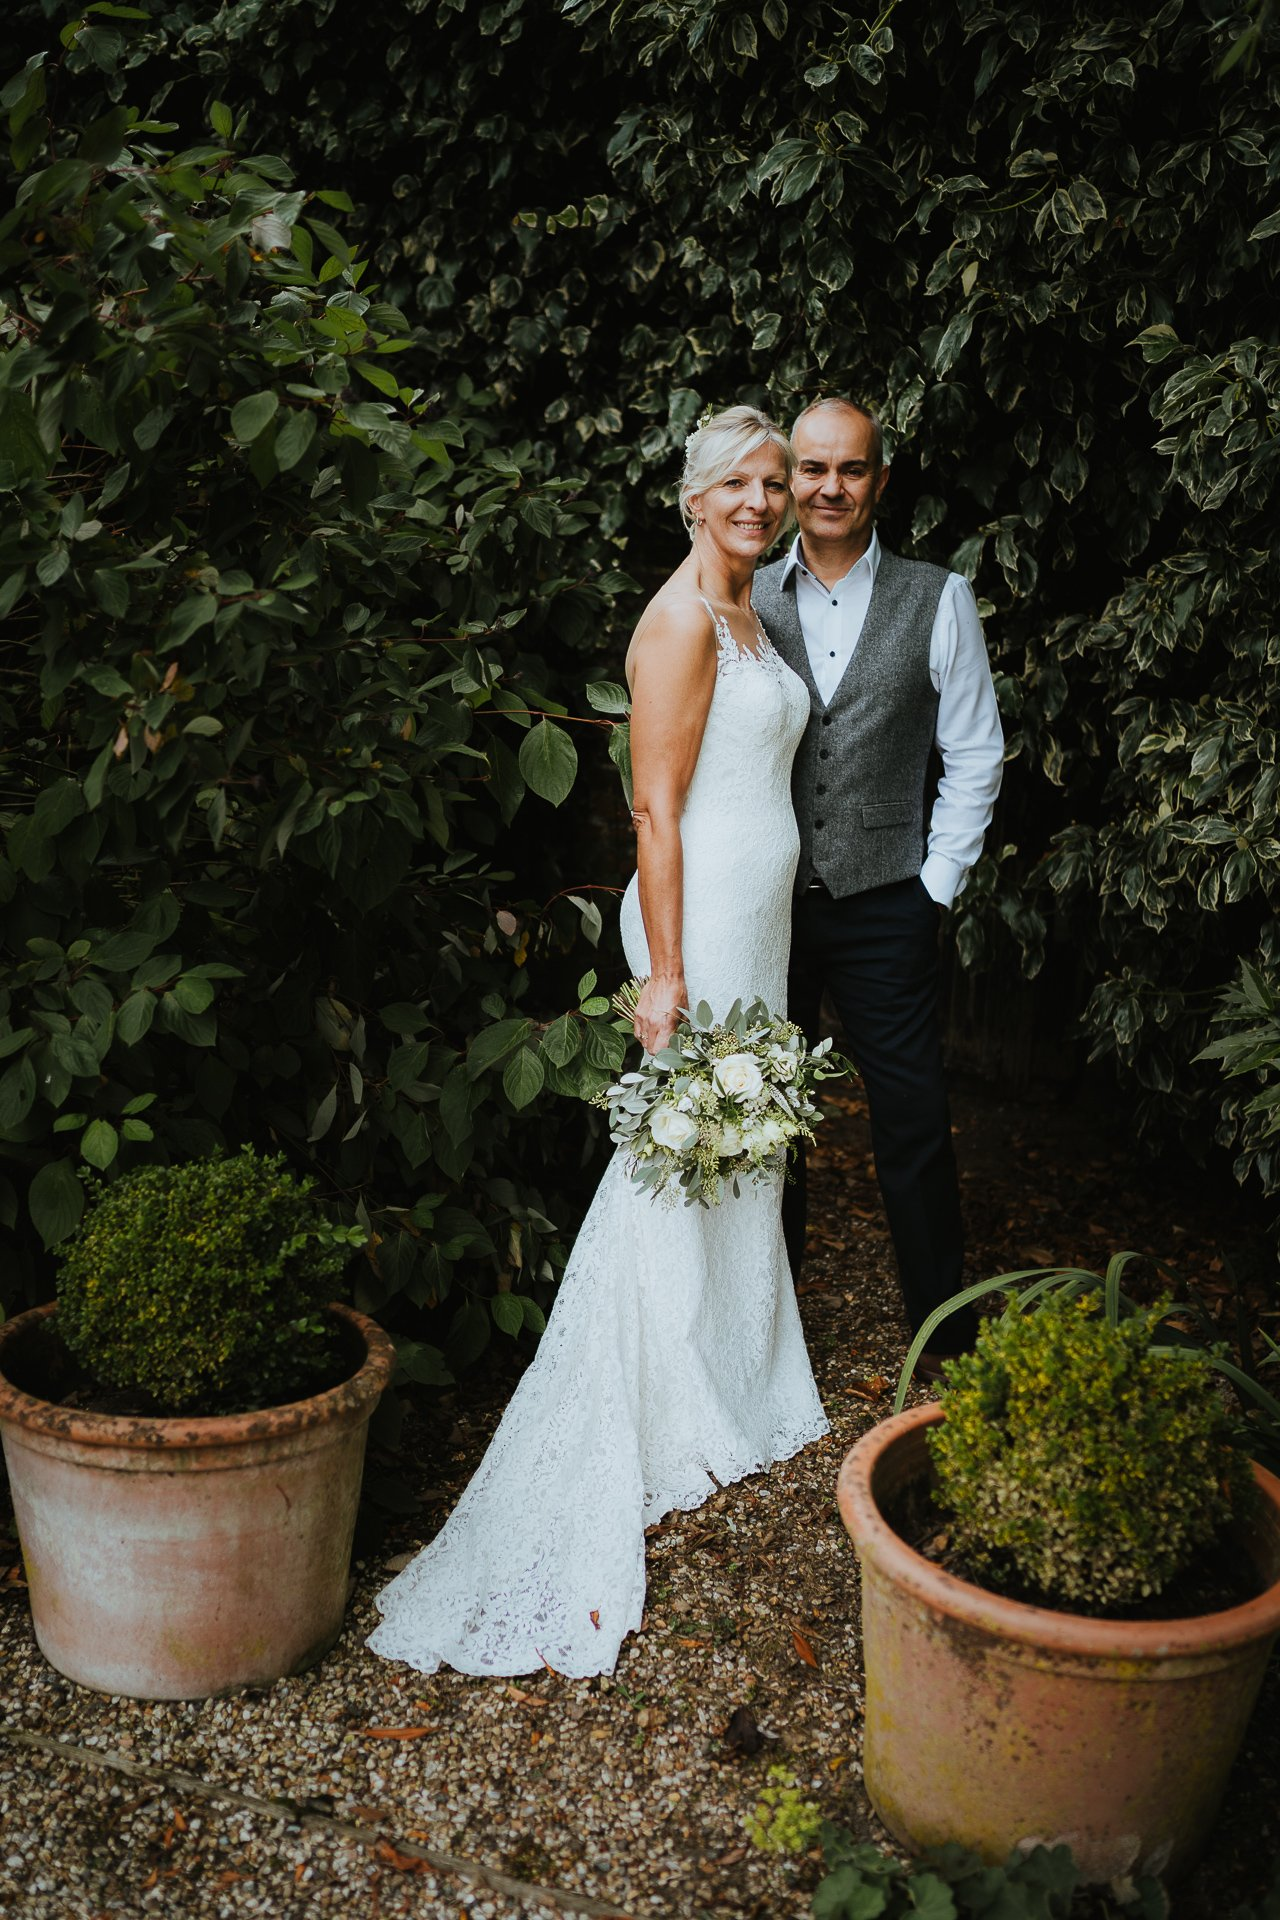 Bride and groom in garden portrait